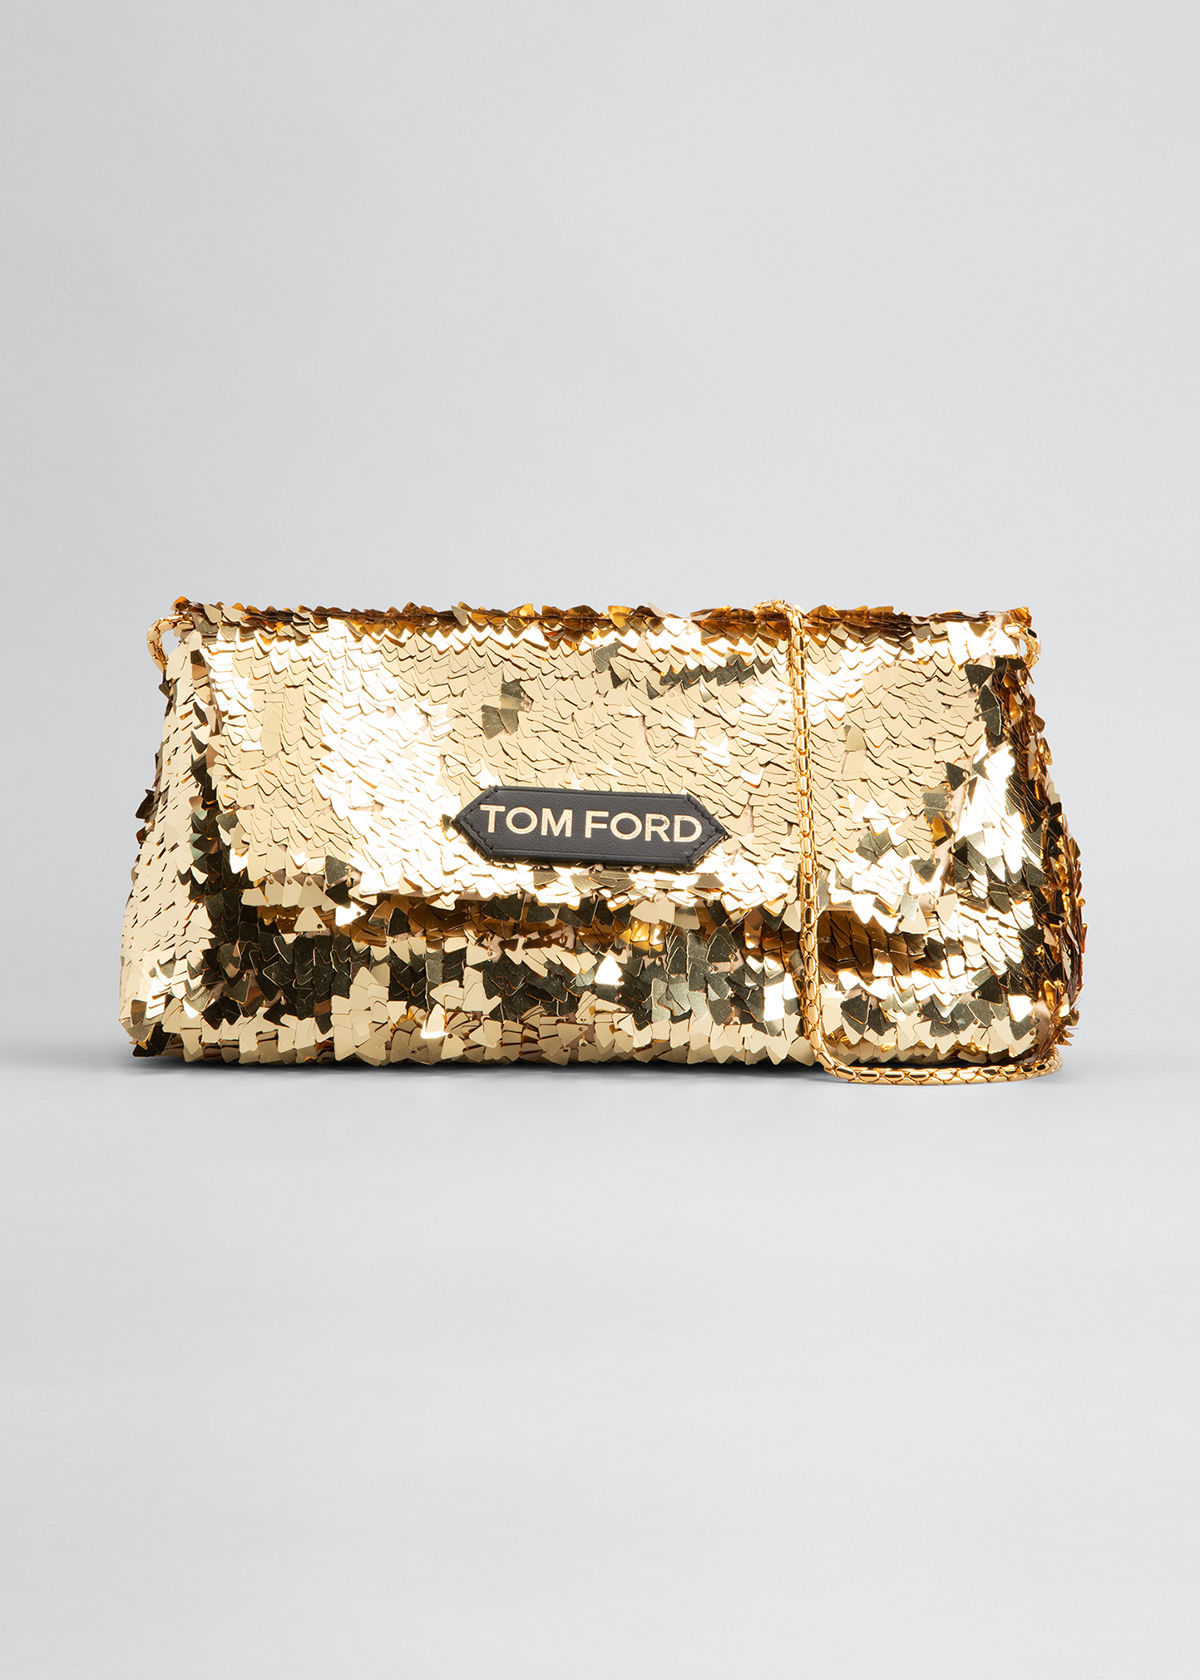 Tom Ford LABEL SMALL SEQUIN CHAIN SHOULDER BAG